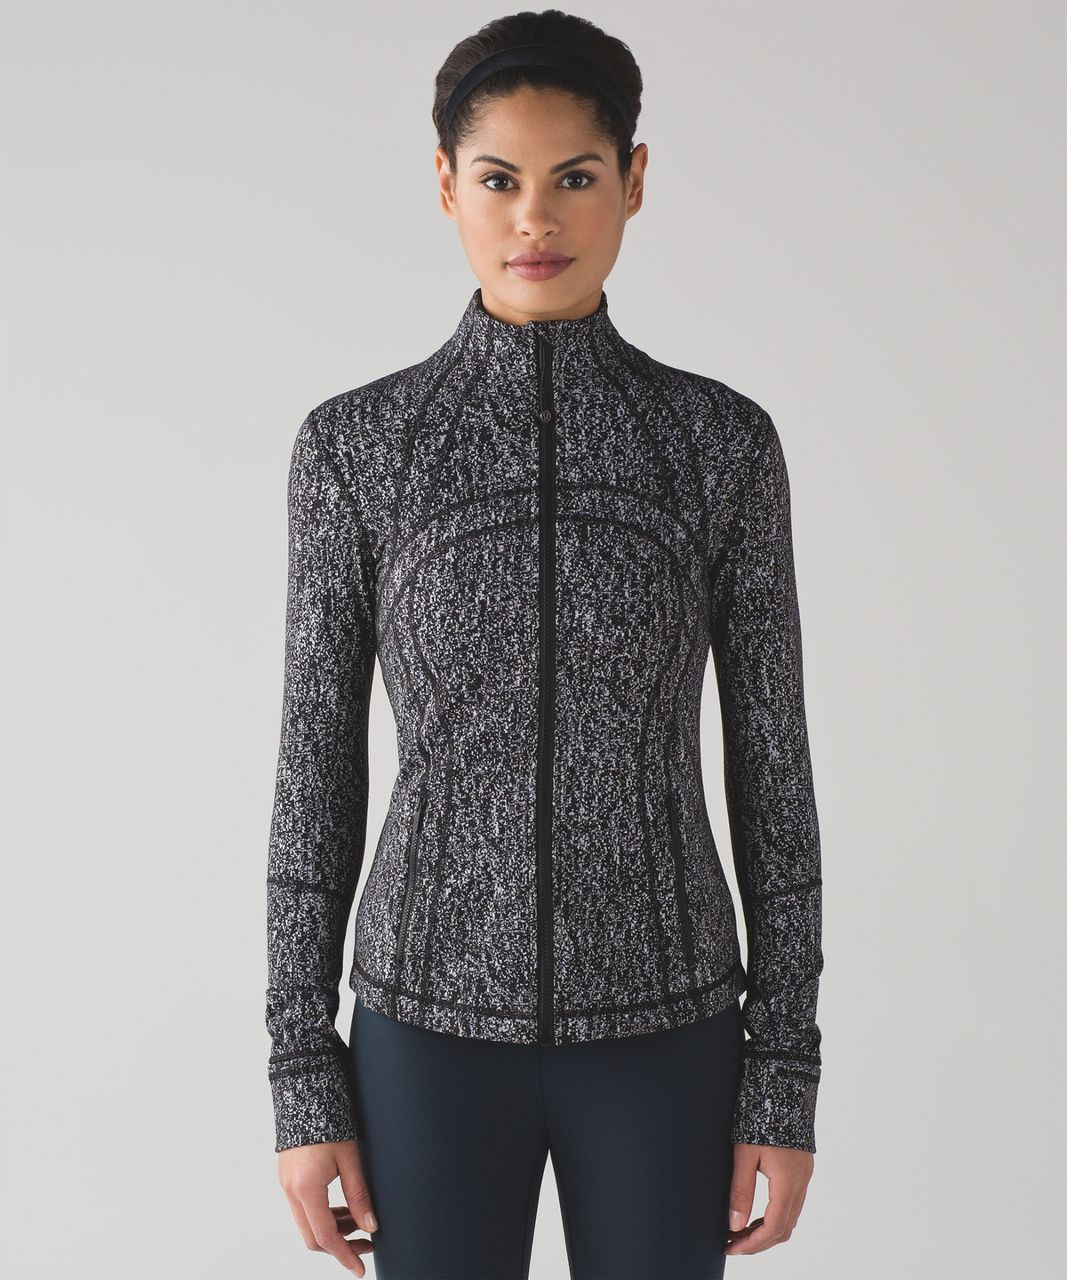 Lululemon Define Jacket - Luon Suited Jacquard Black White